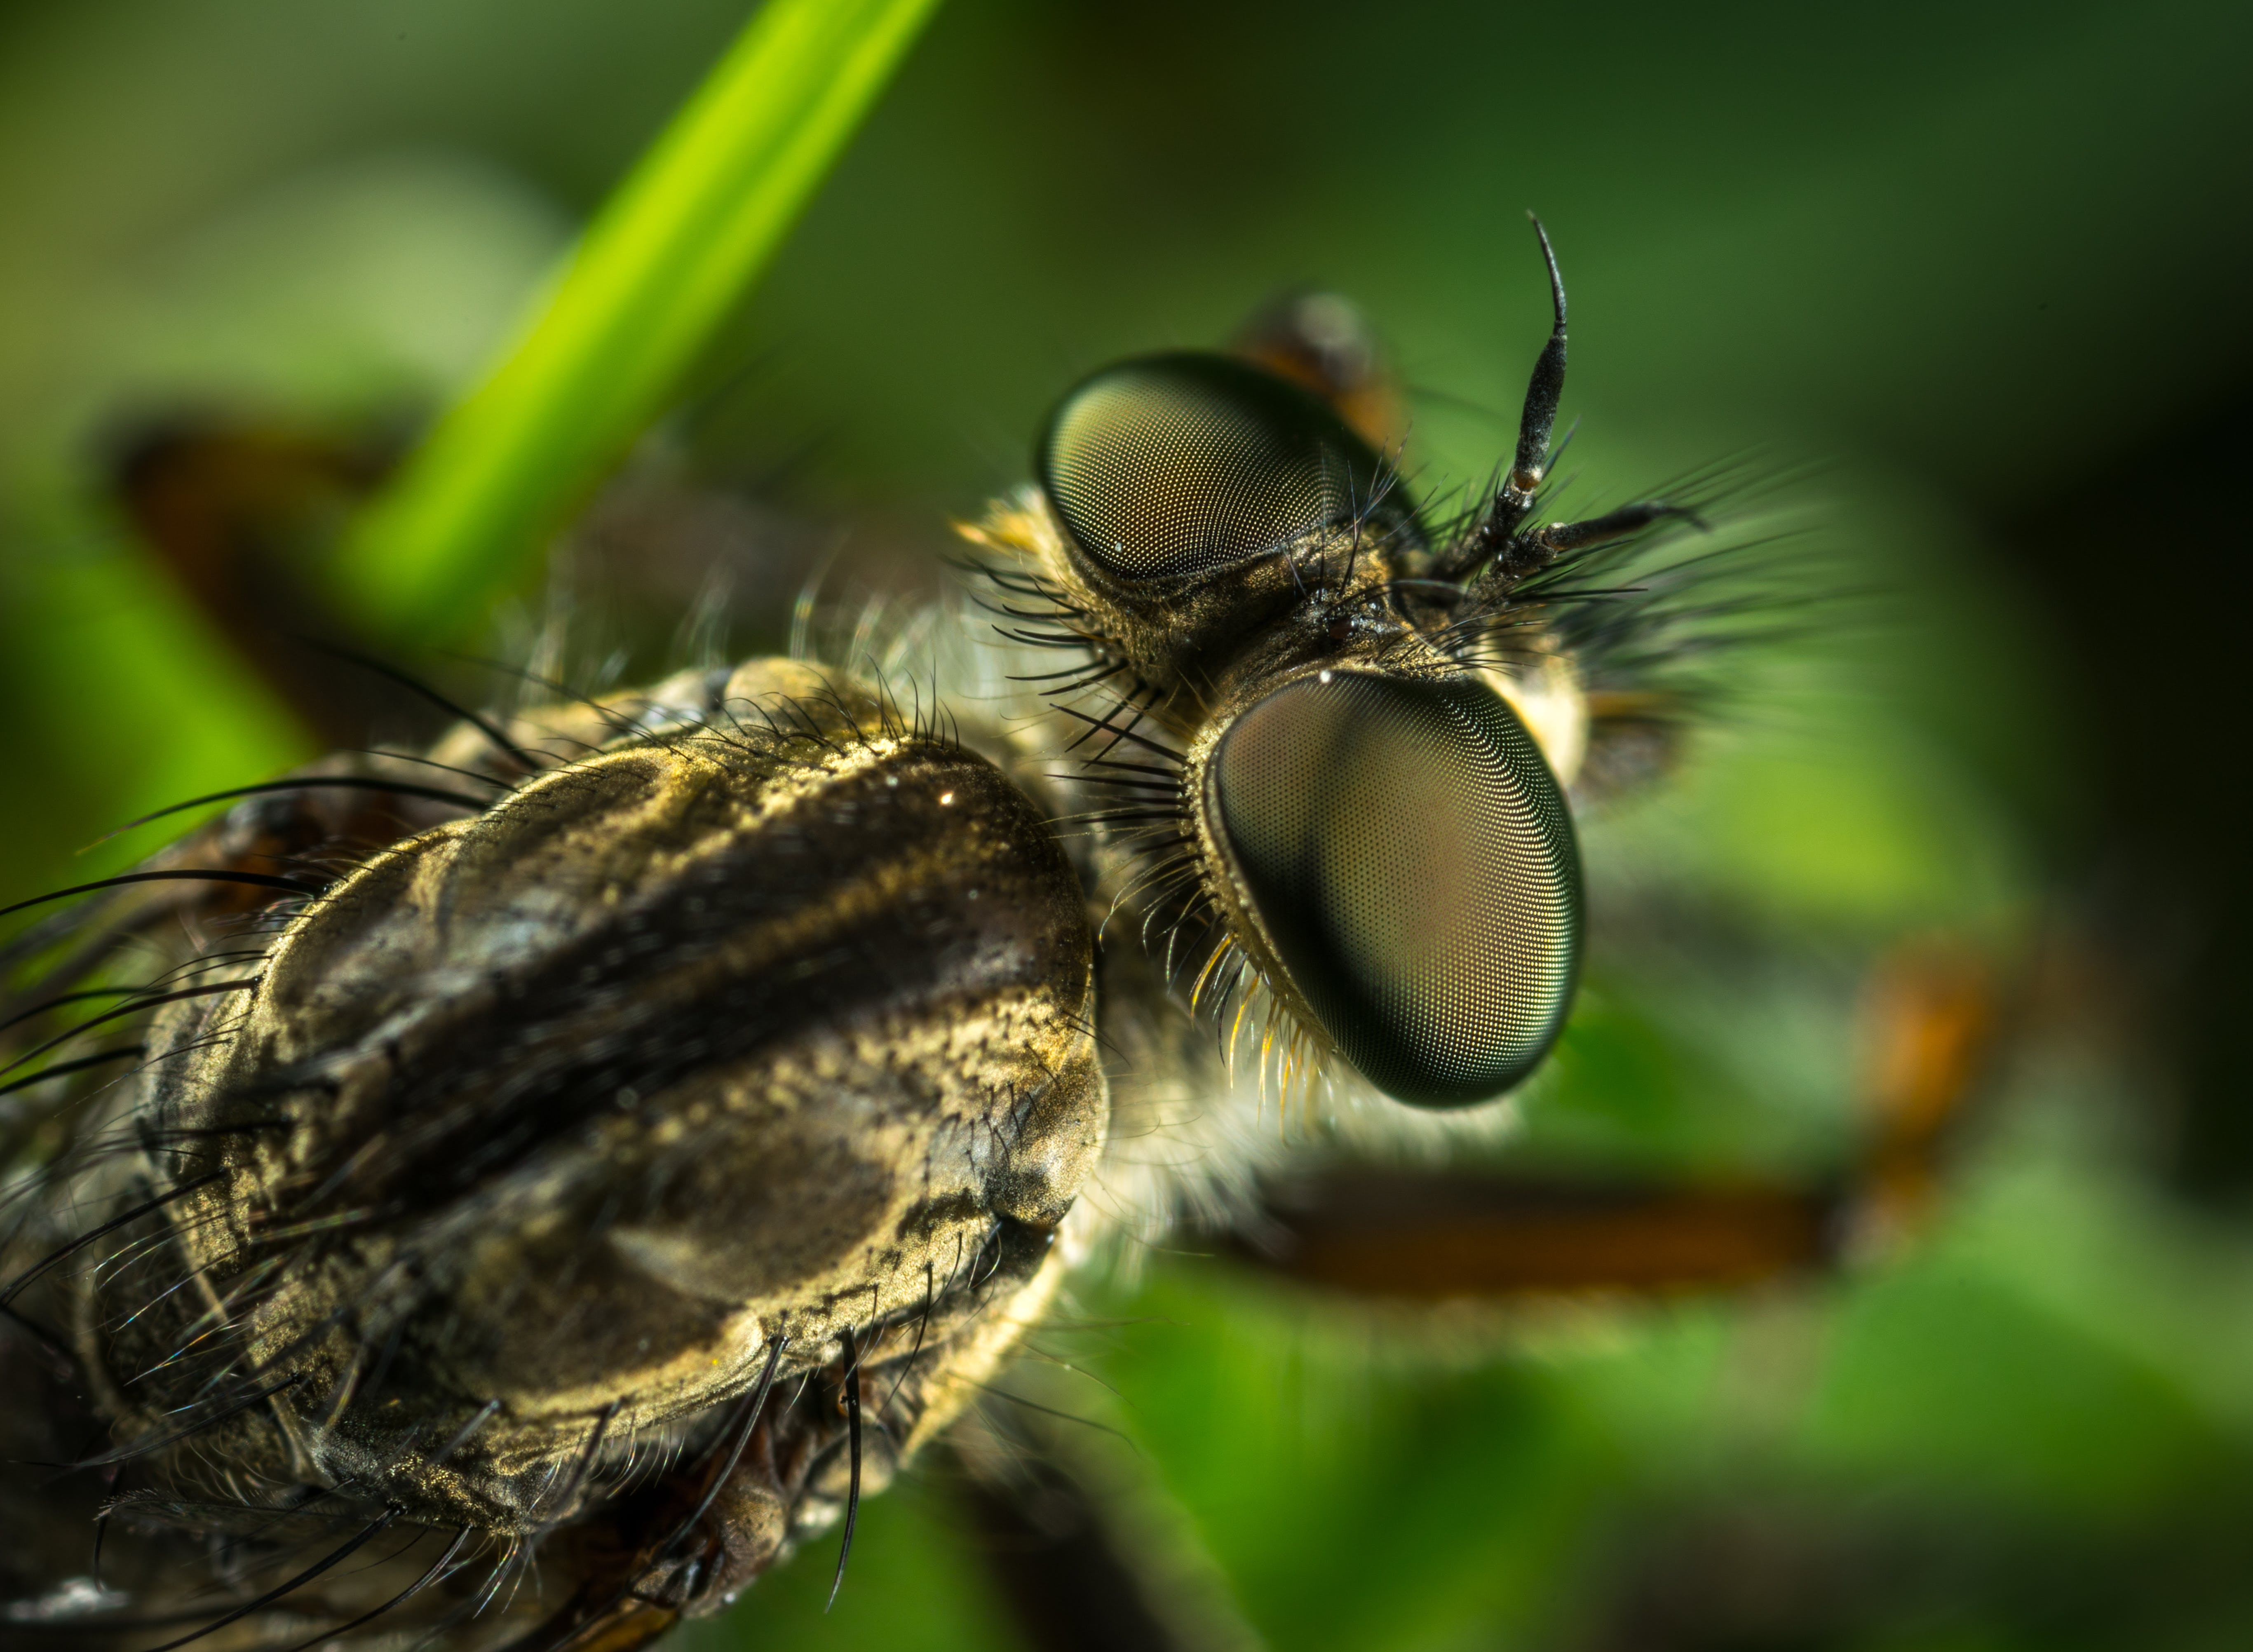 Macro Photography of Robber Fly